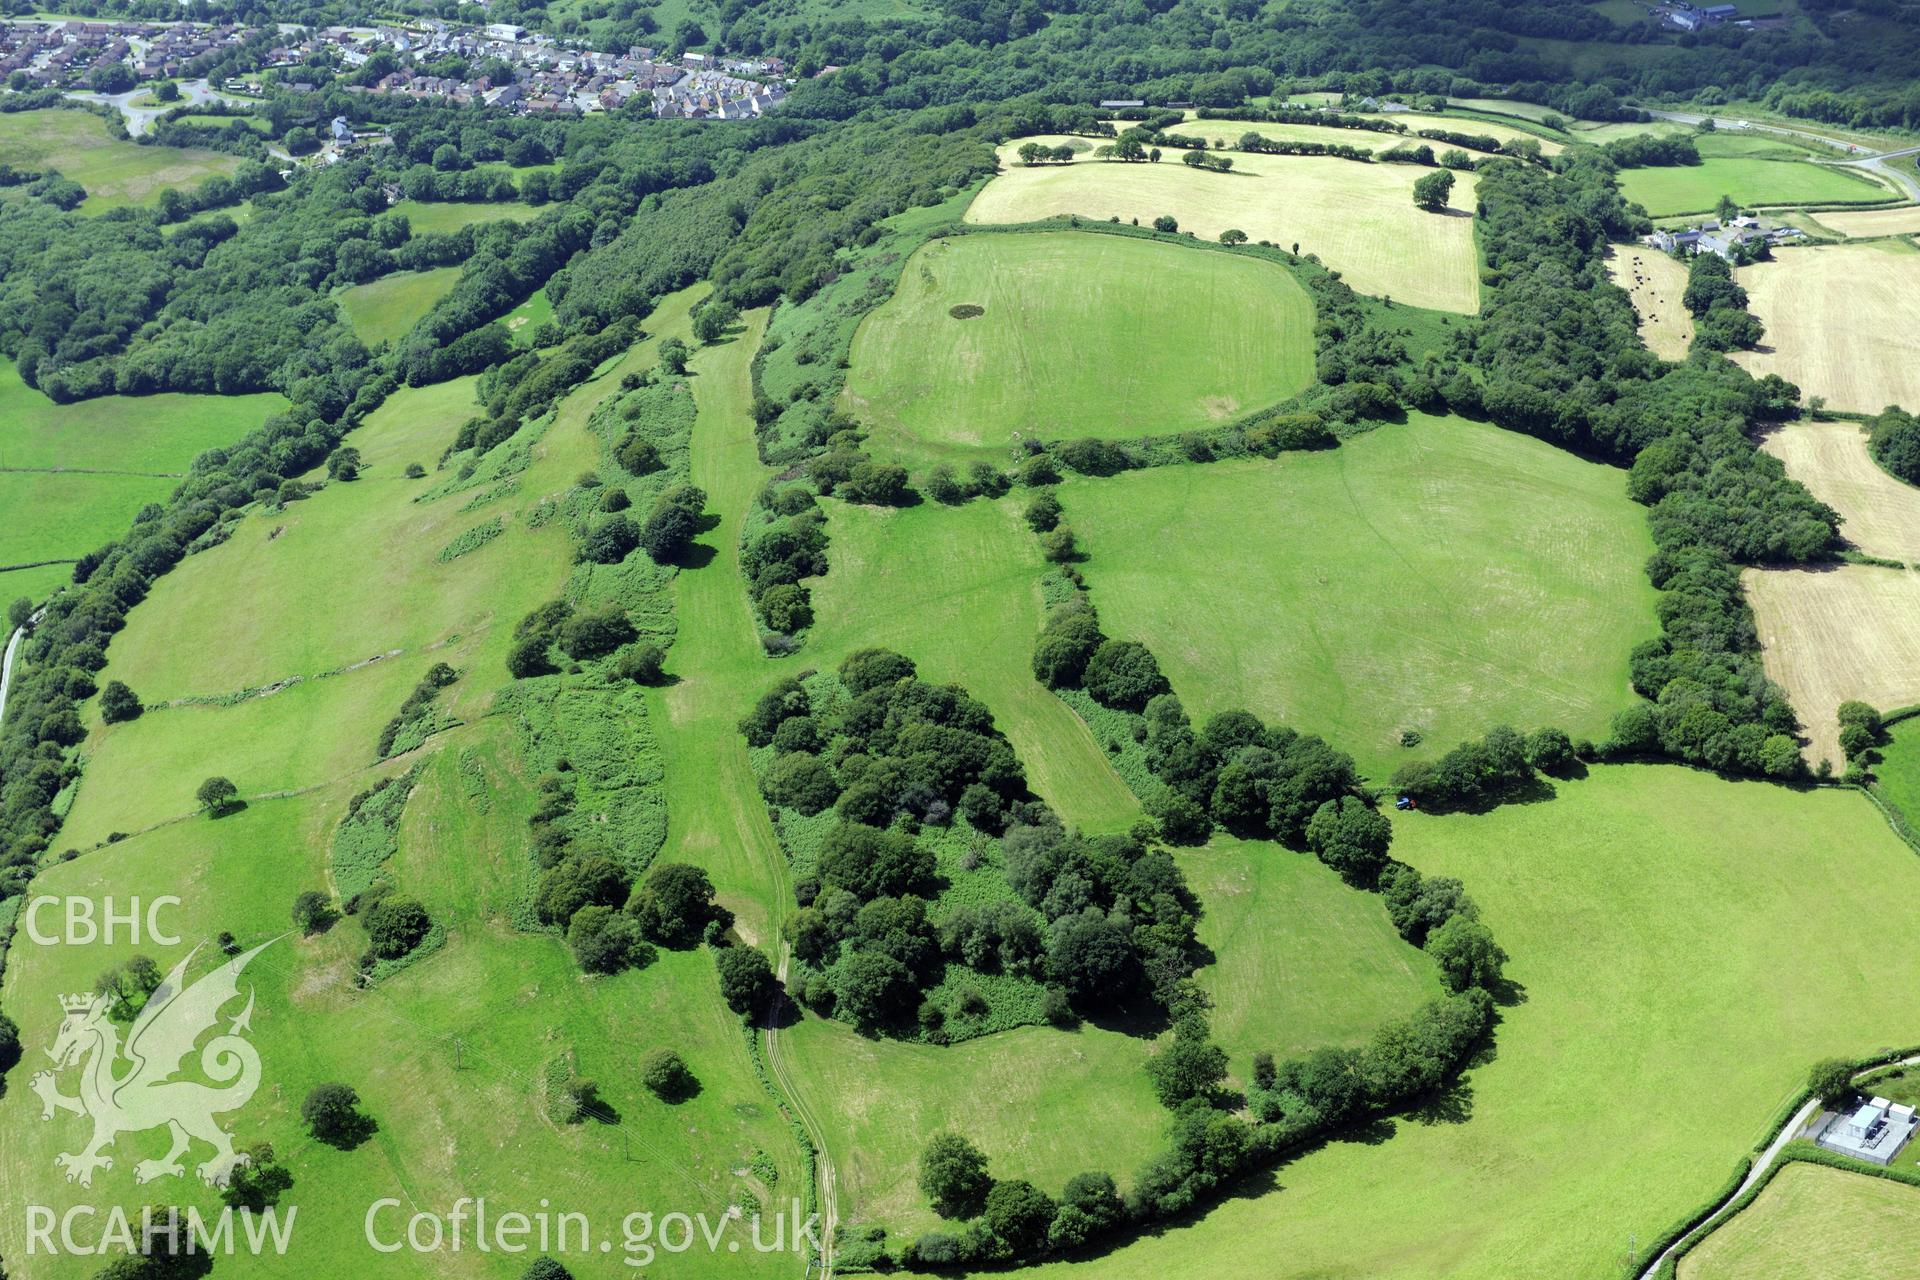 Caerau Hillfort and supposed site of battle, Rhiwsaeson, Llantrisant. Oblique aerial photograph taken during the Royal Commission's programme of archaeological aerial reconnaissance by Toby Driver on 29th June 2015.